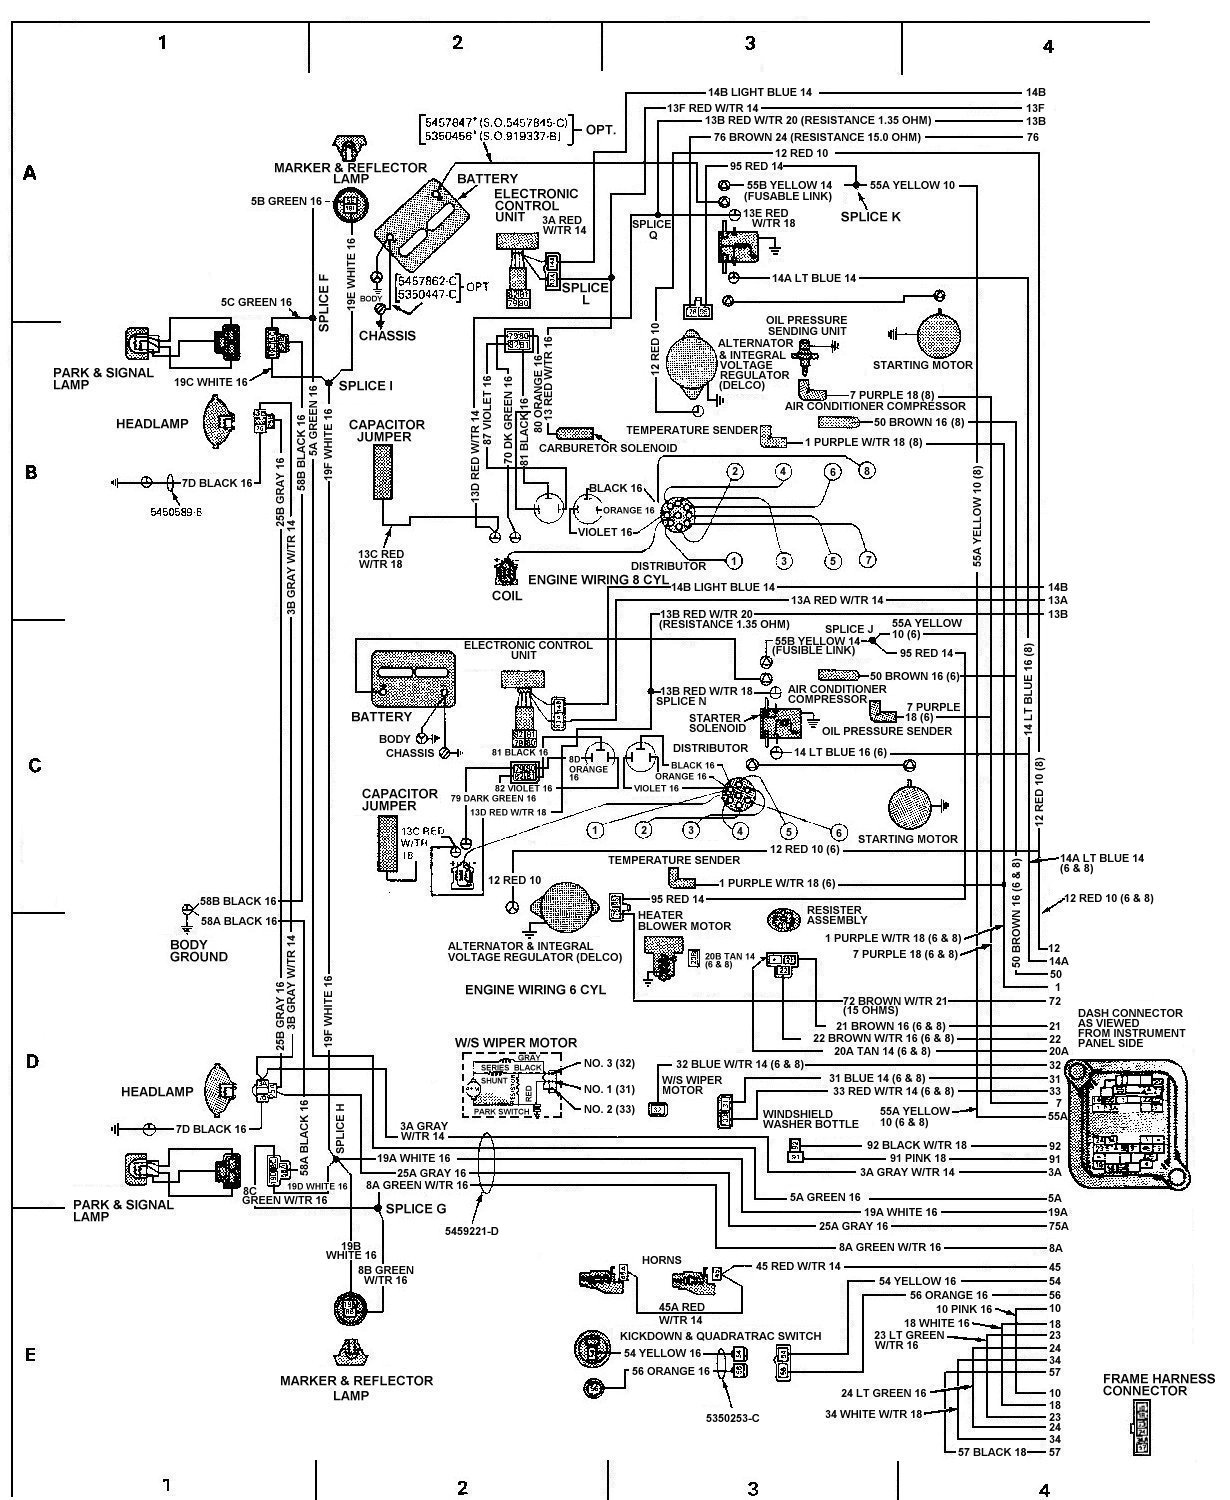 78_FSJ_WiringDiagramPage7 tom 'oljeep' collins fsj wiring page 1990 jeep cherokee wiring diagram at reclaimingppi.co